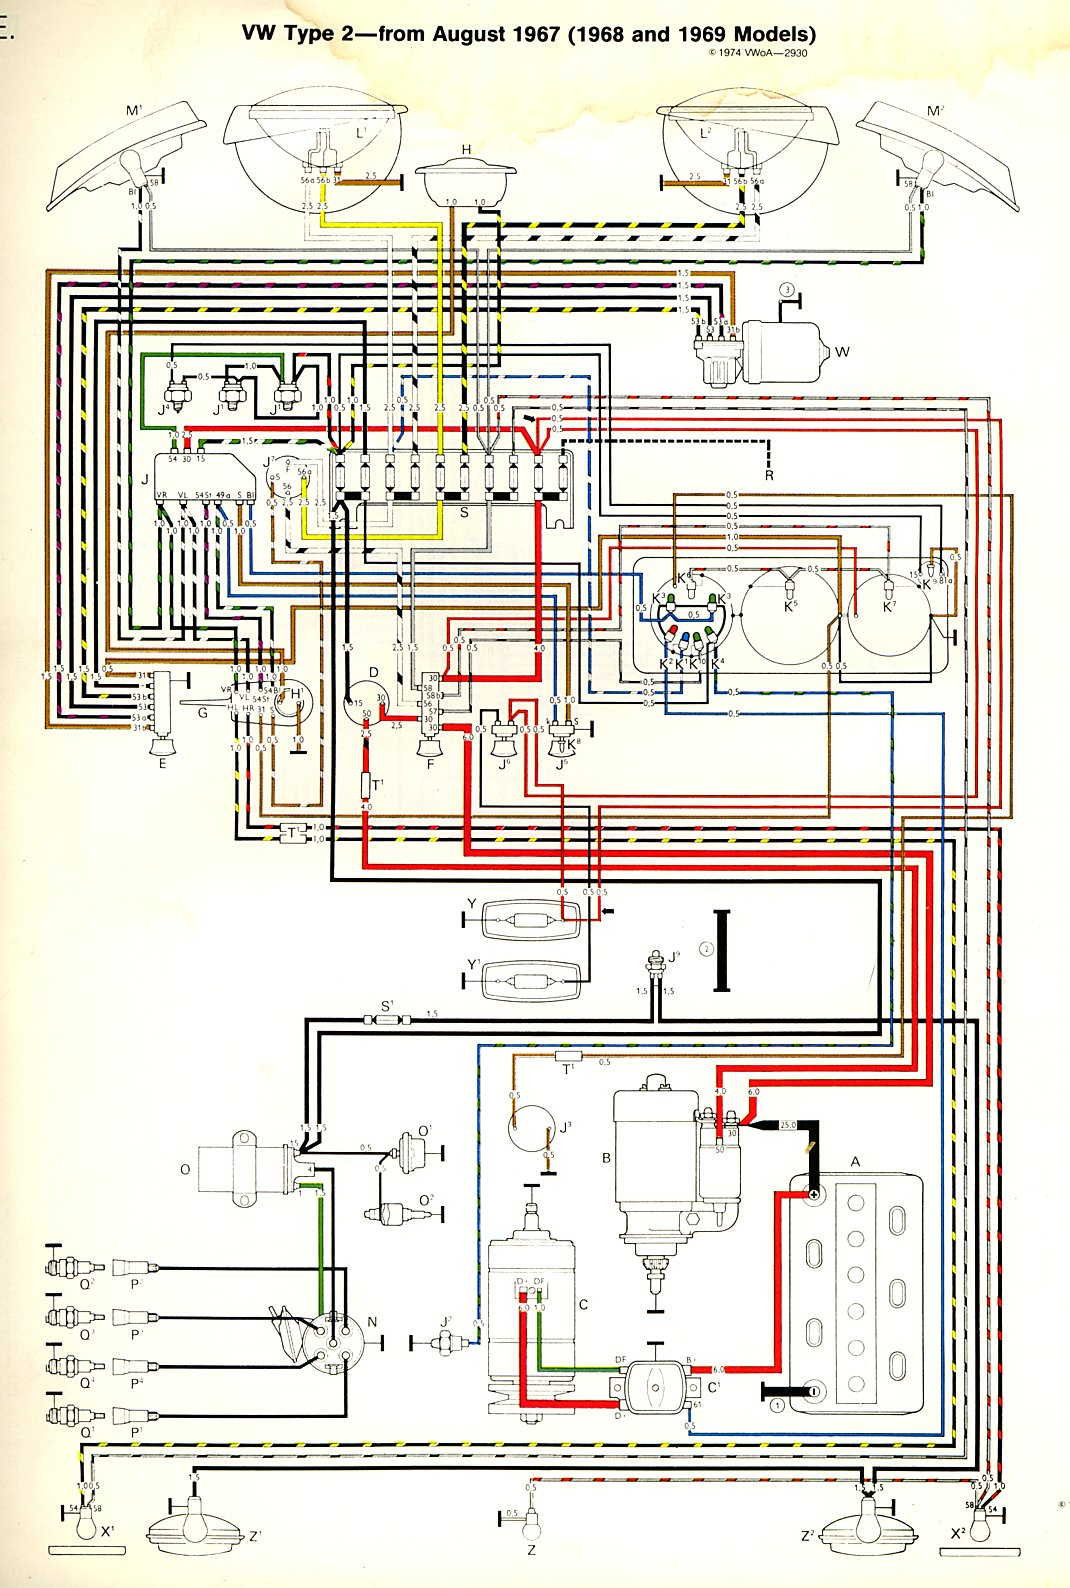 baybus_6869a 1968 69 bus wiring diagram thegoldenbug com vw golf 3 electrical wiring diagram at webbmarketing.co